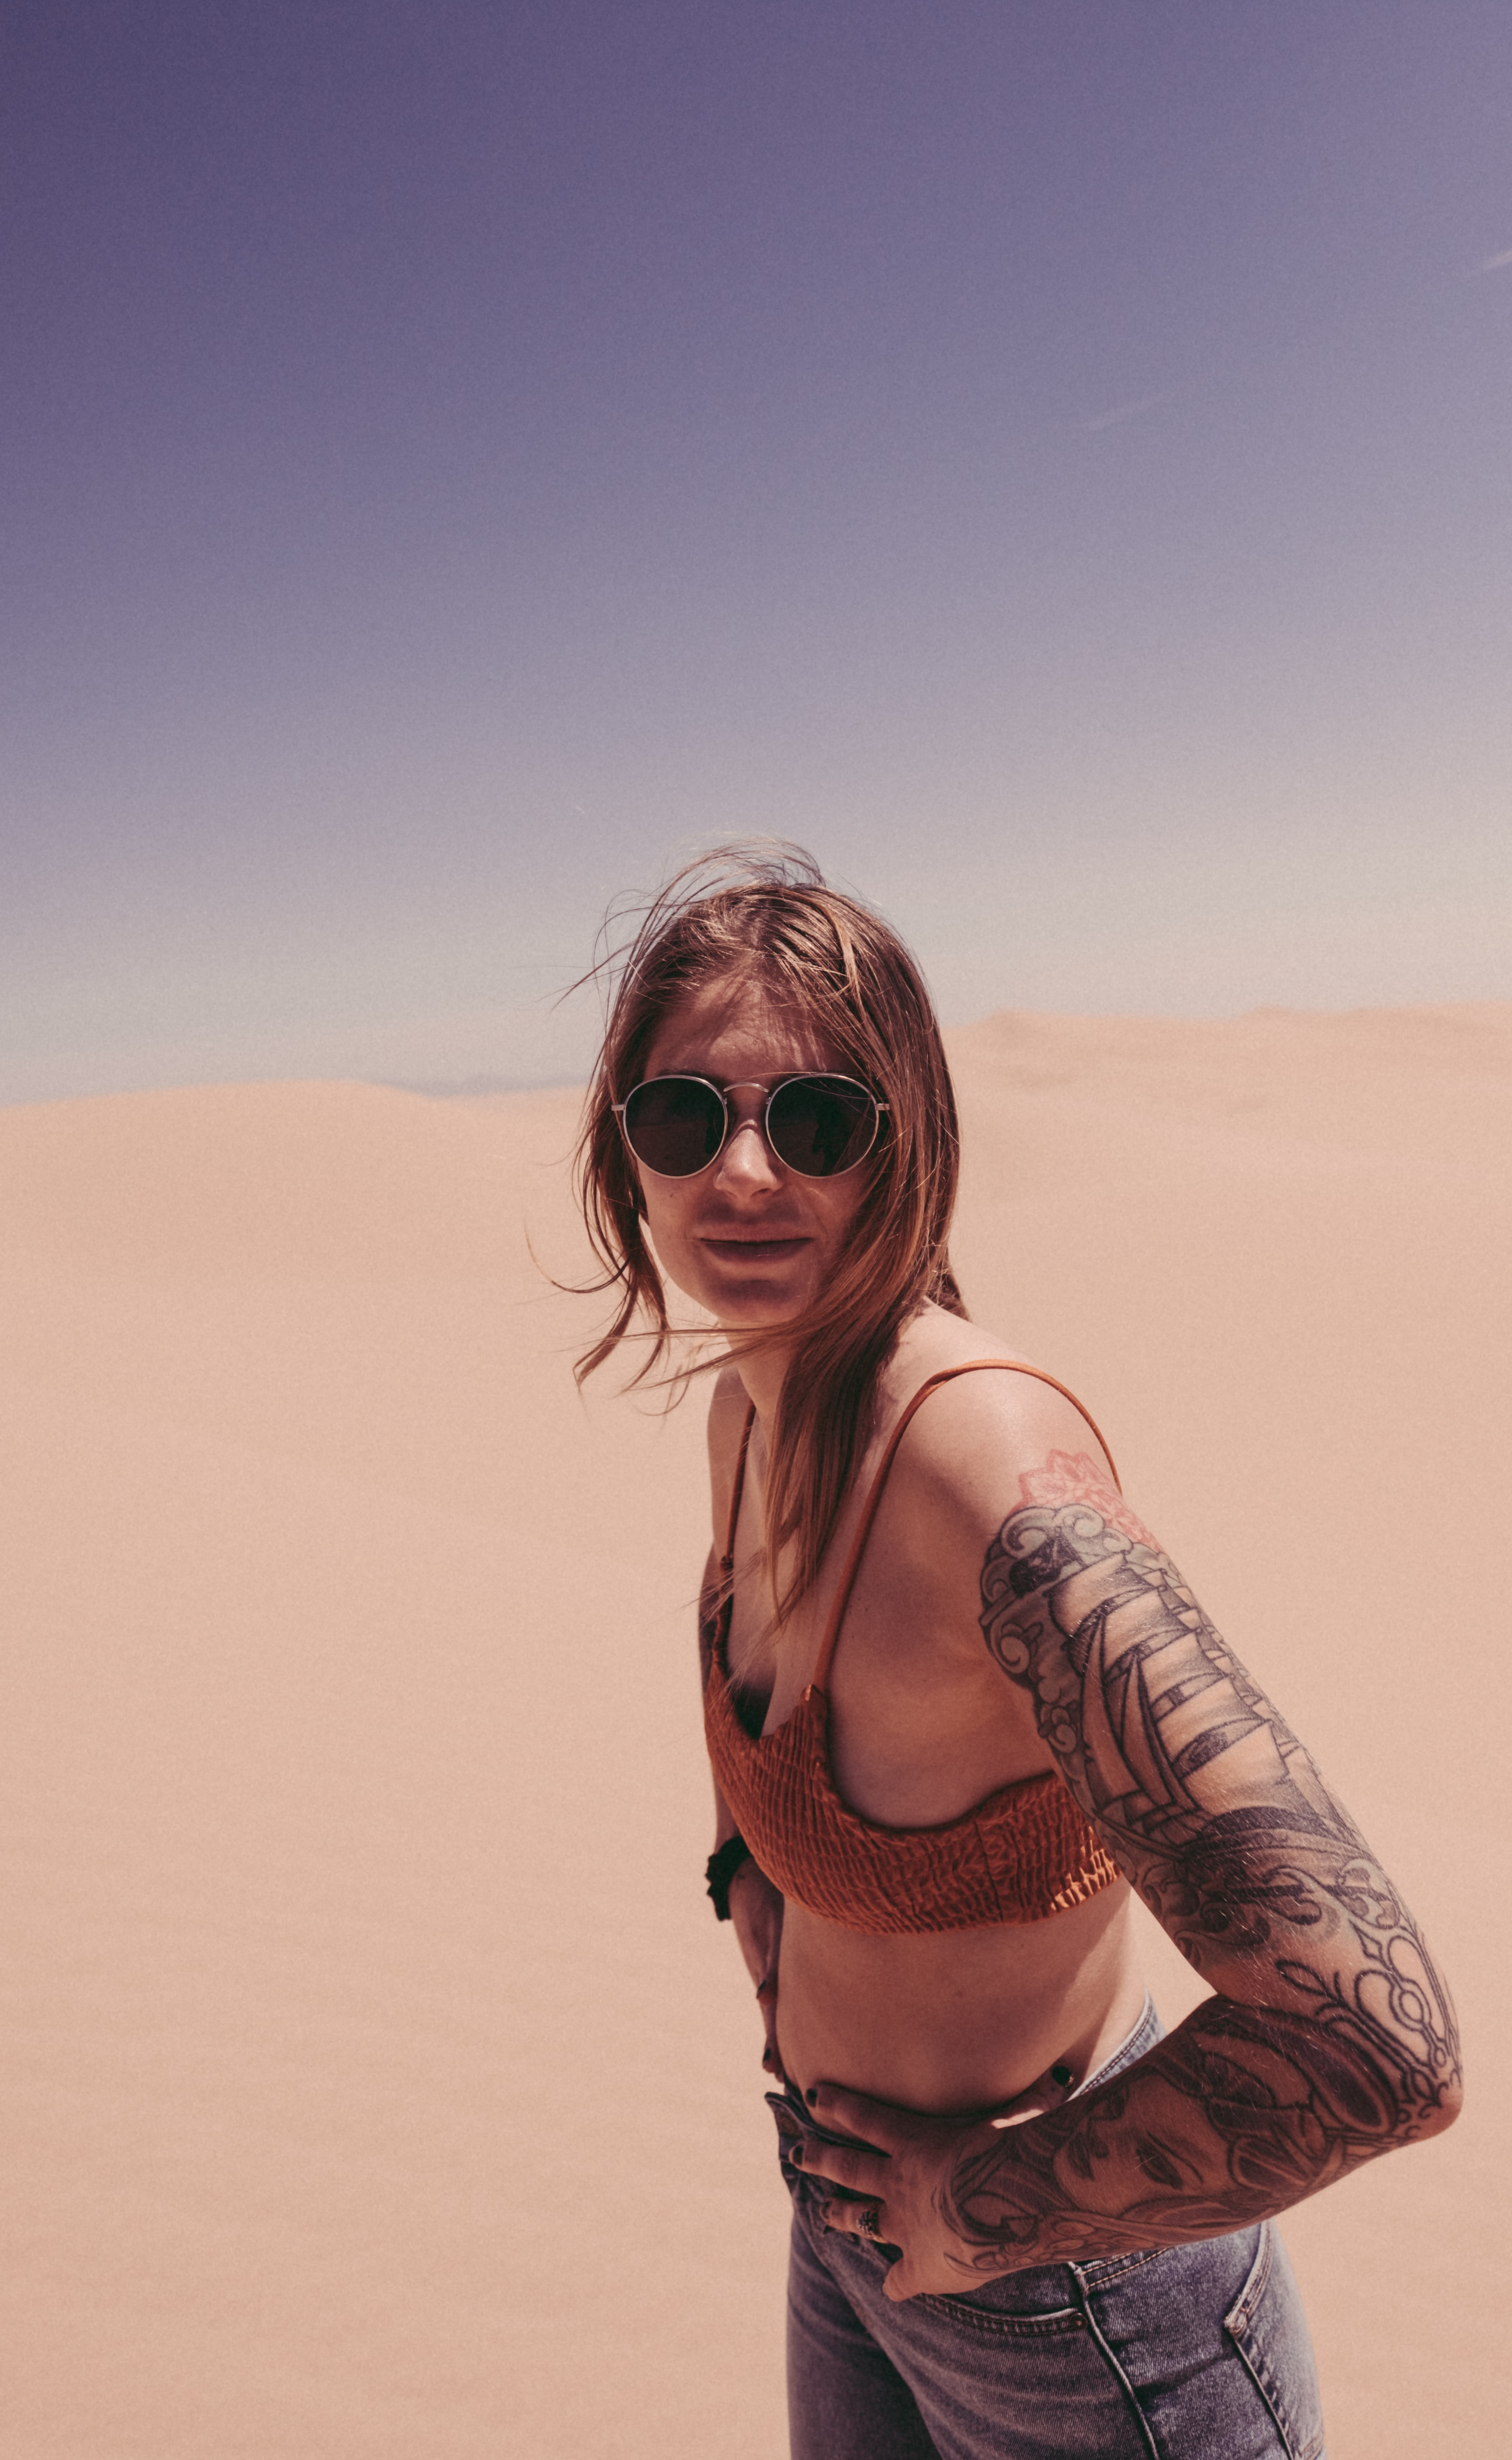 woman in knitted bra on desert